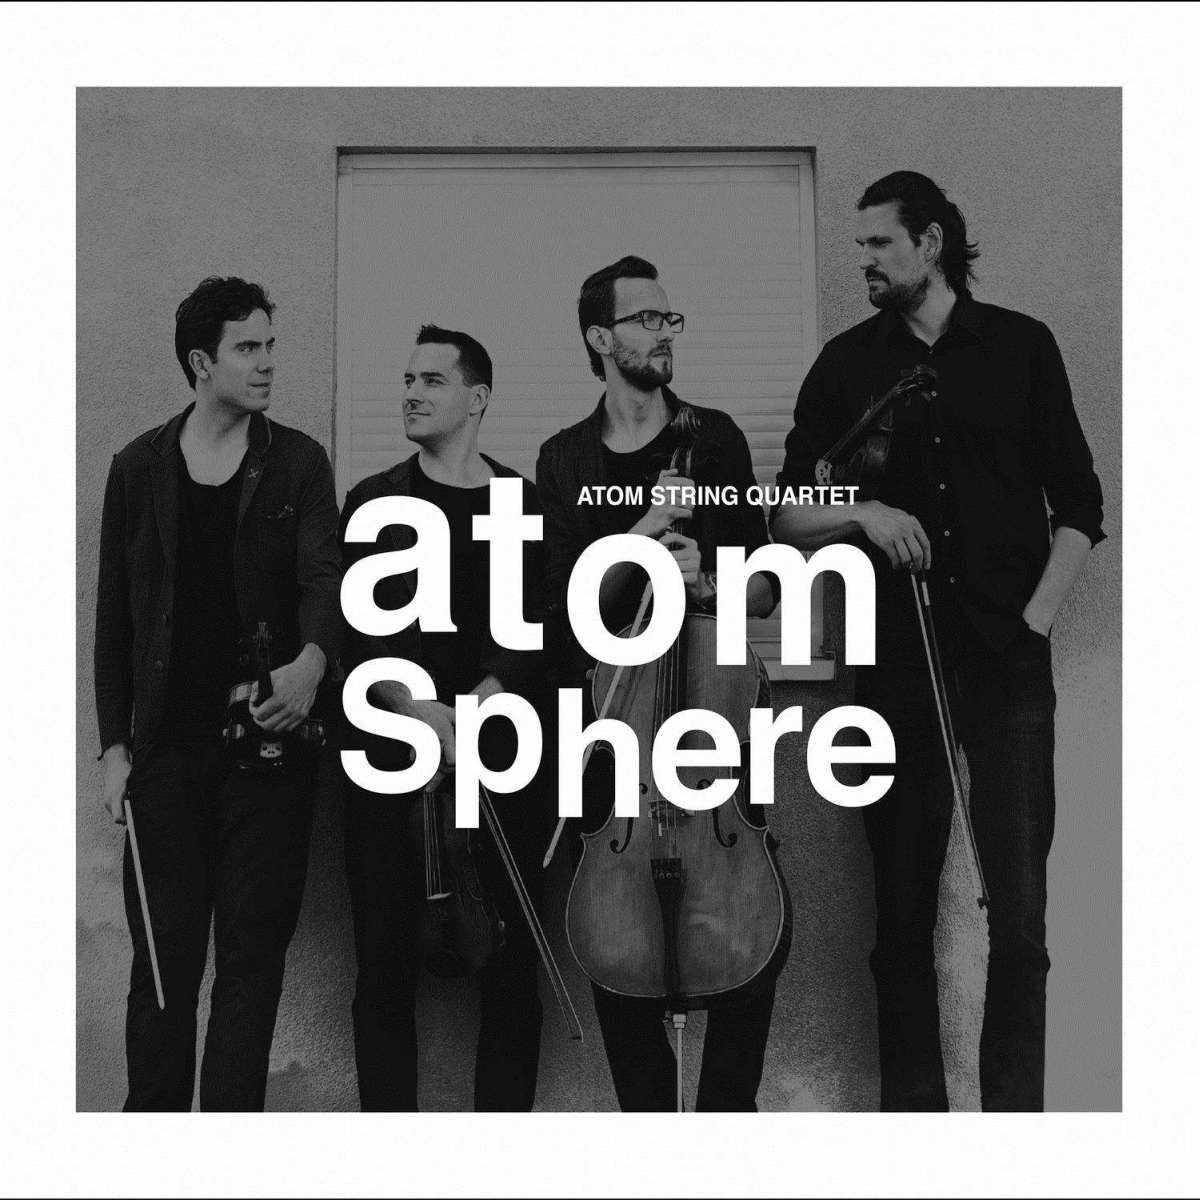 Atom String Quartet – Atomsphere